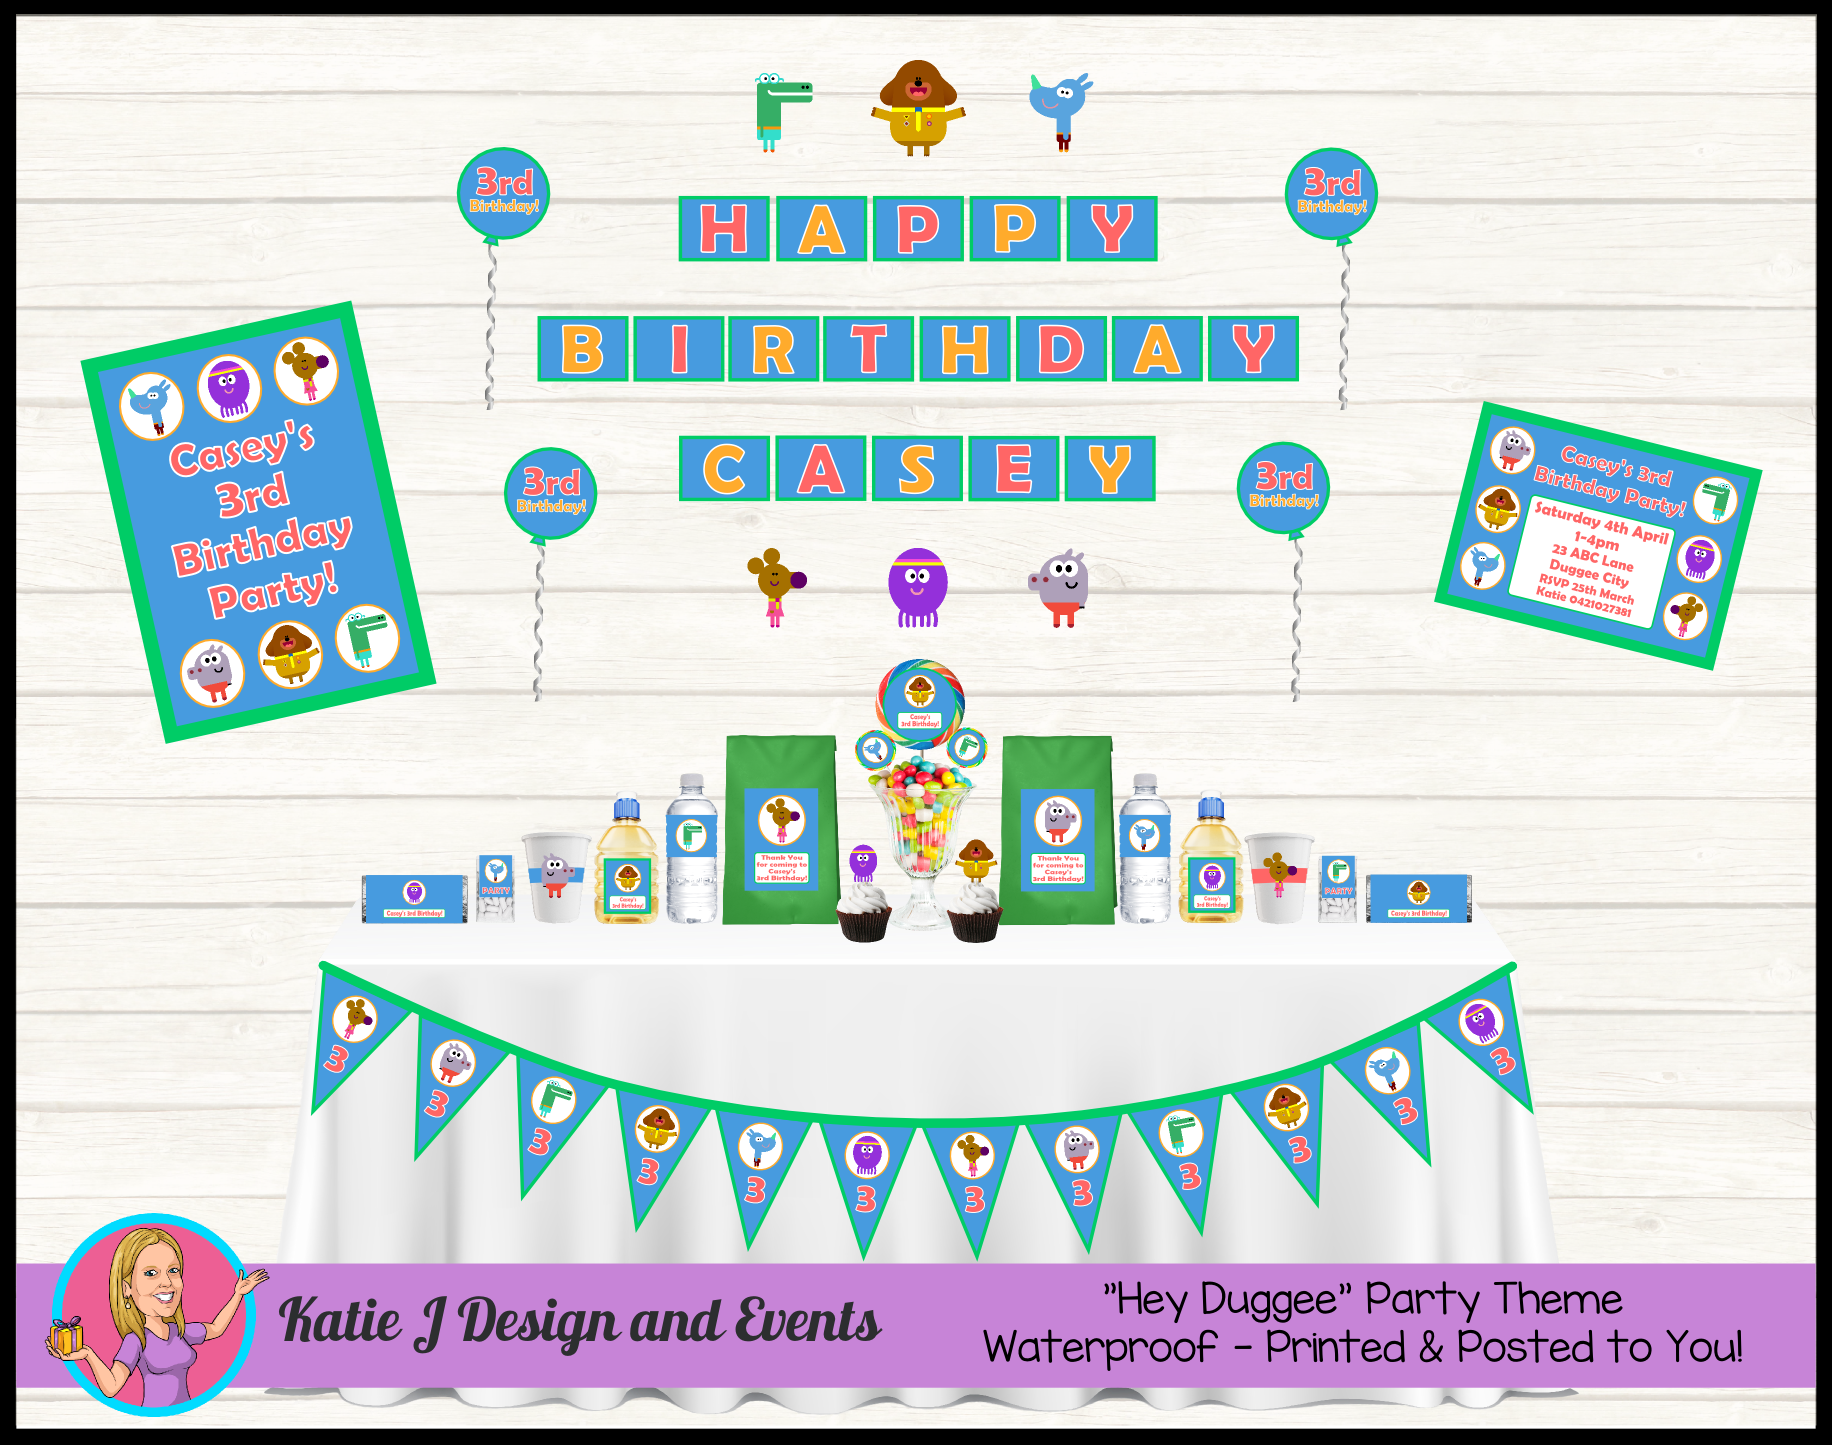 Hey Duggee Personalised Birthday Party Decorations Supplies Packs Shop Online Australia Banners Bunting Wall Display Cupcake